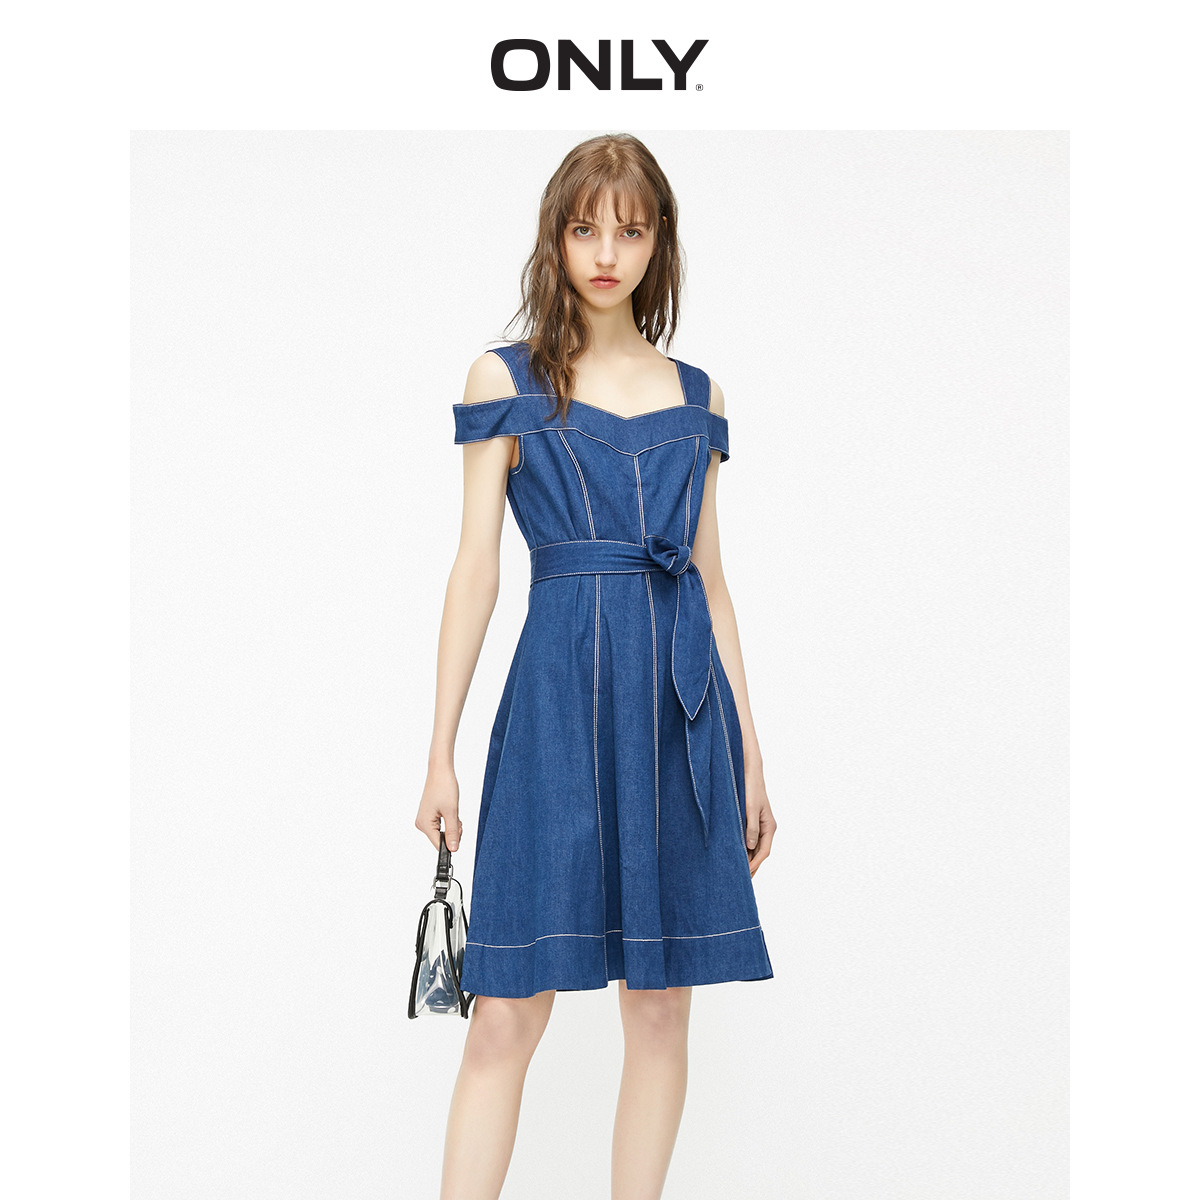 ONLY Women's Slim Fit Lace-up Waist A-lined Denim Dress | 119242507